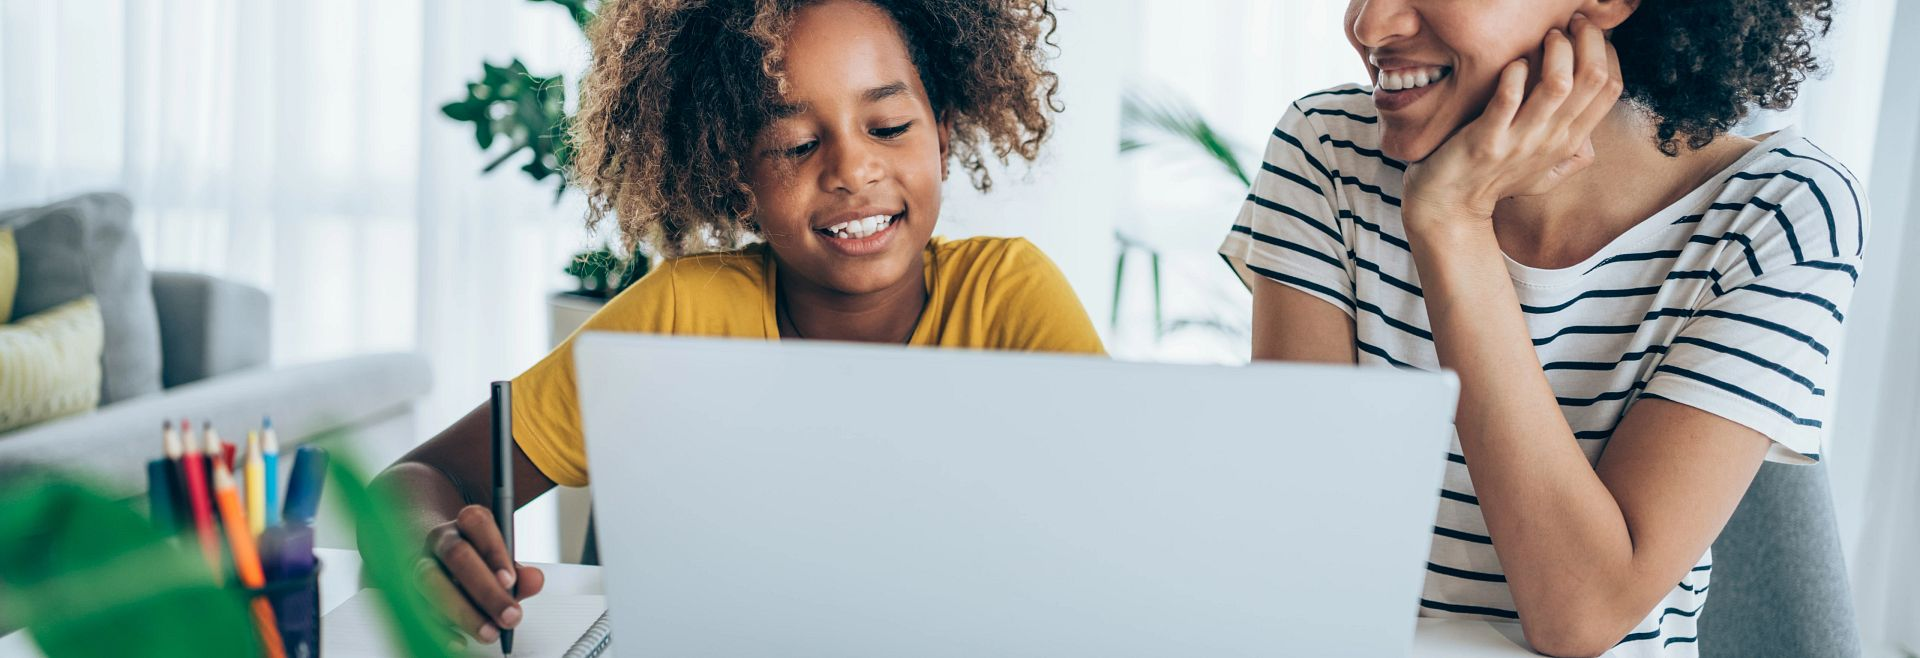 Mother Daughter Studying Online Getty Images